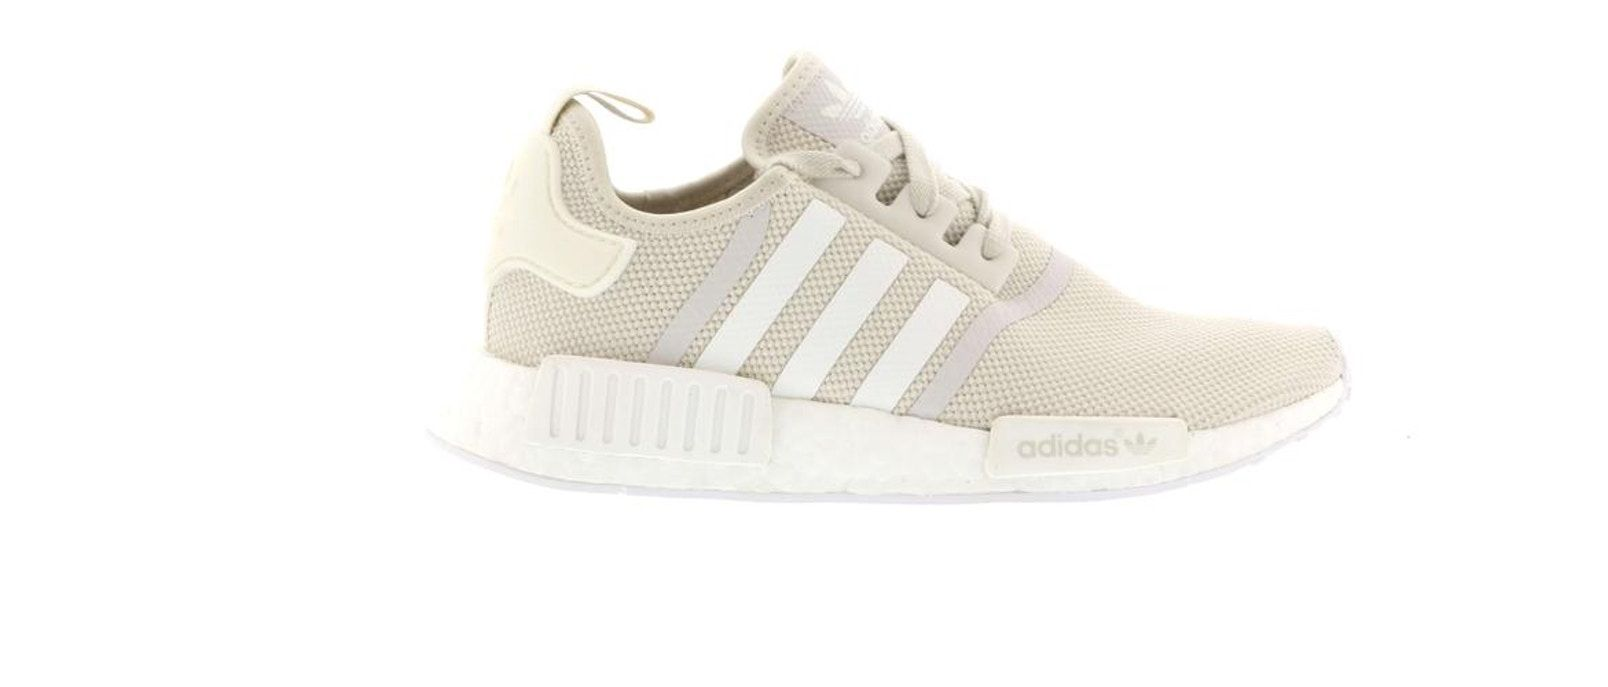 b5ad0892 Check out the adidas NMD R1 Sand (W) available on StockX | Shoeology ...